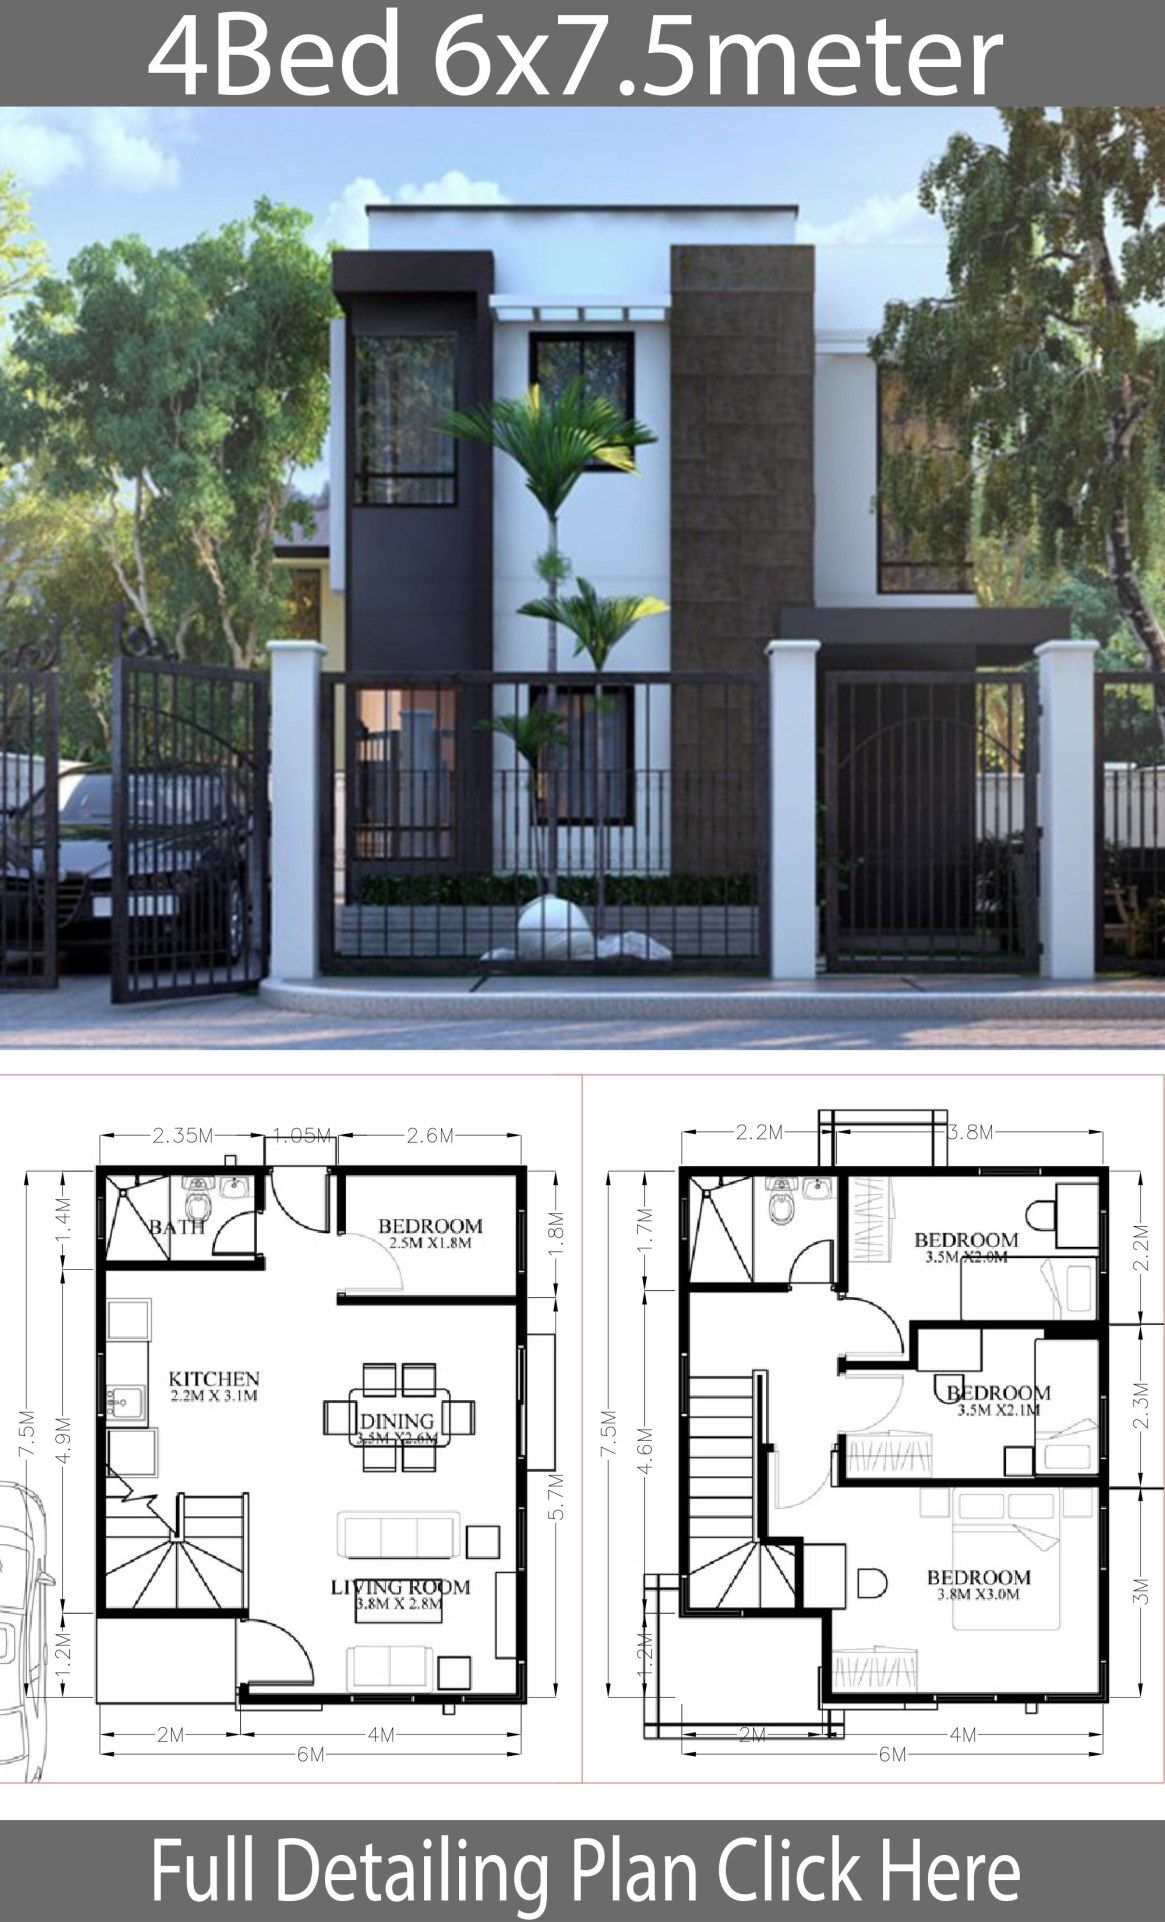 Small Home Design Plan 6x7 5m With 4 Bedrooms Home Design With Plansearch Small House Design Plans Modern Small House Design Small House Layout